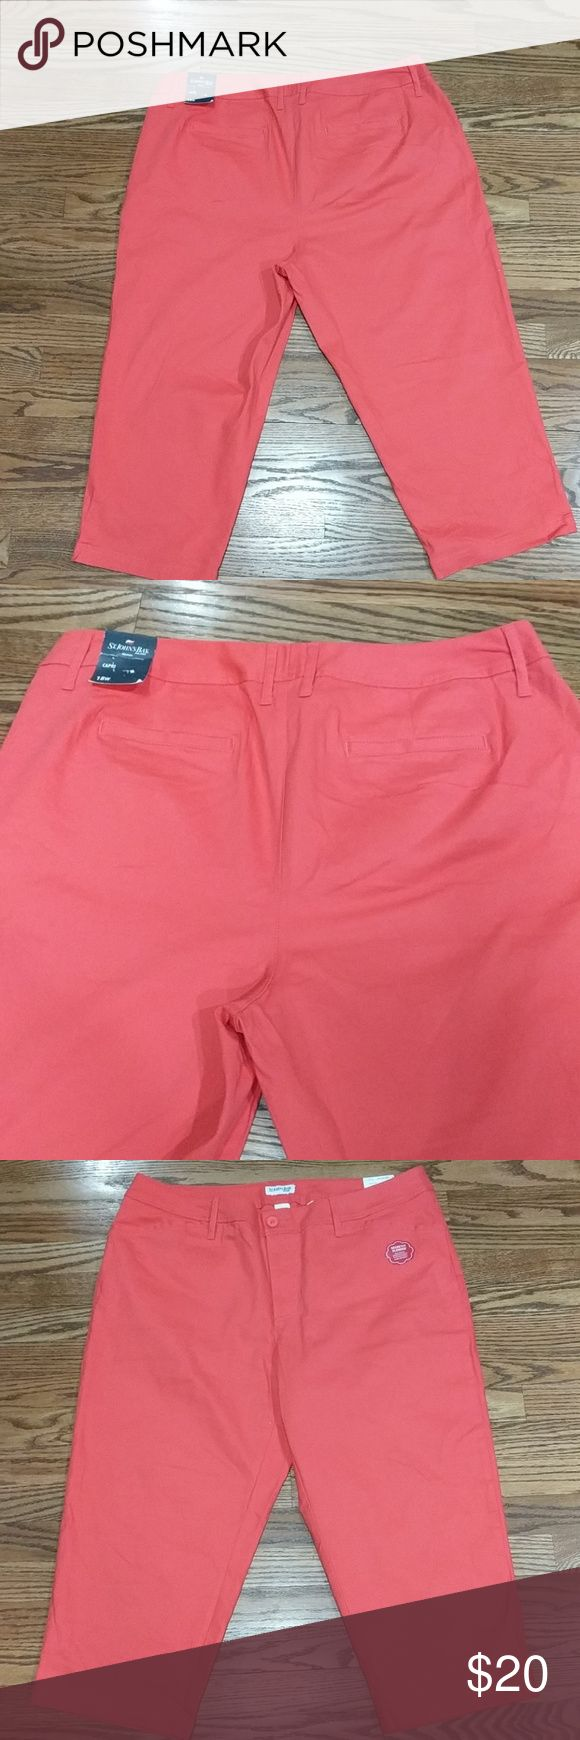 "St Johns Bay Womens Coral Capri St John's Bay women's coral capris. Secretly slender style. Inseam approx 22"" 2 front and 2 back pockets.   🌟Smoke free home 🌟No trades St. John's Bay Pants Capris"